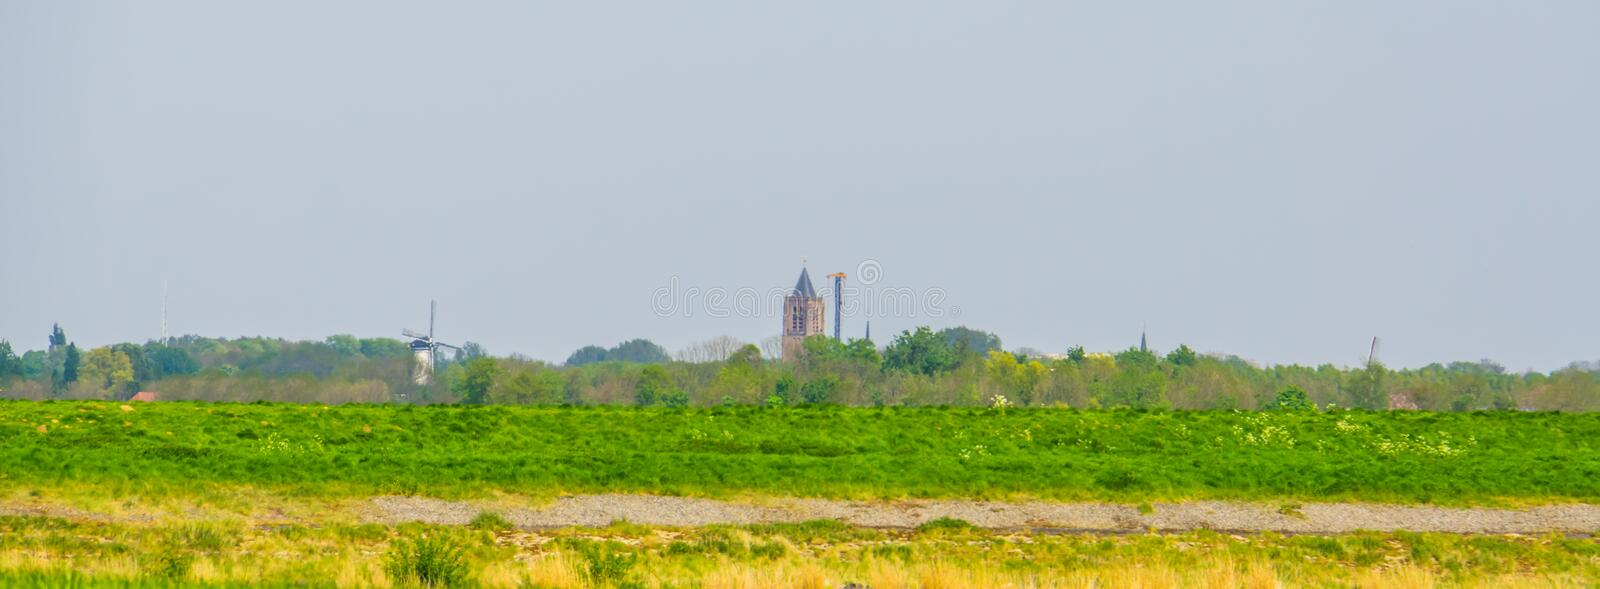 Typical dutch green landscape with a church and windmills, skyline Tholen, Zeeland, The netherlands stock photo